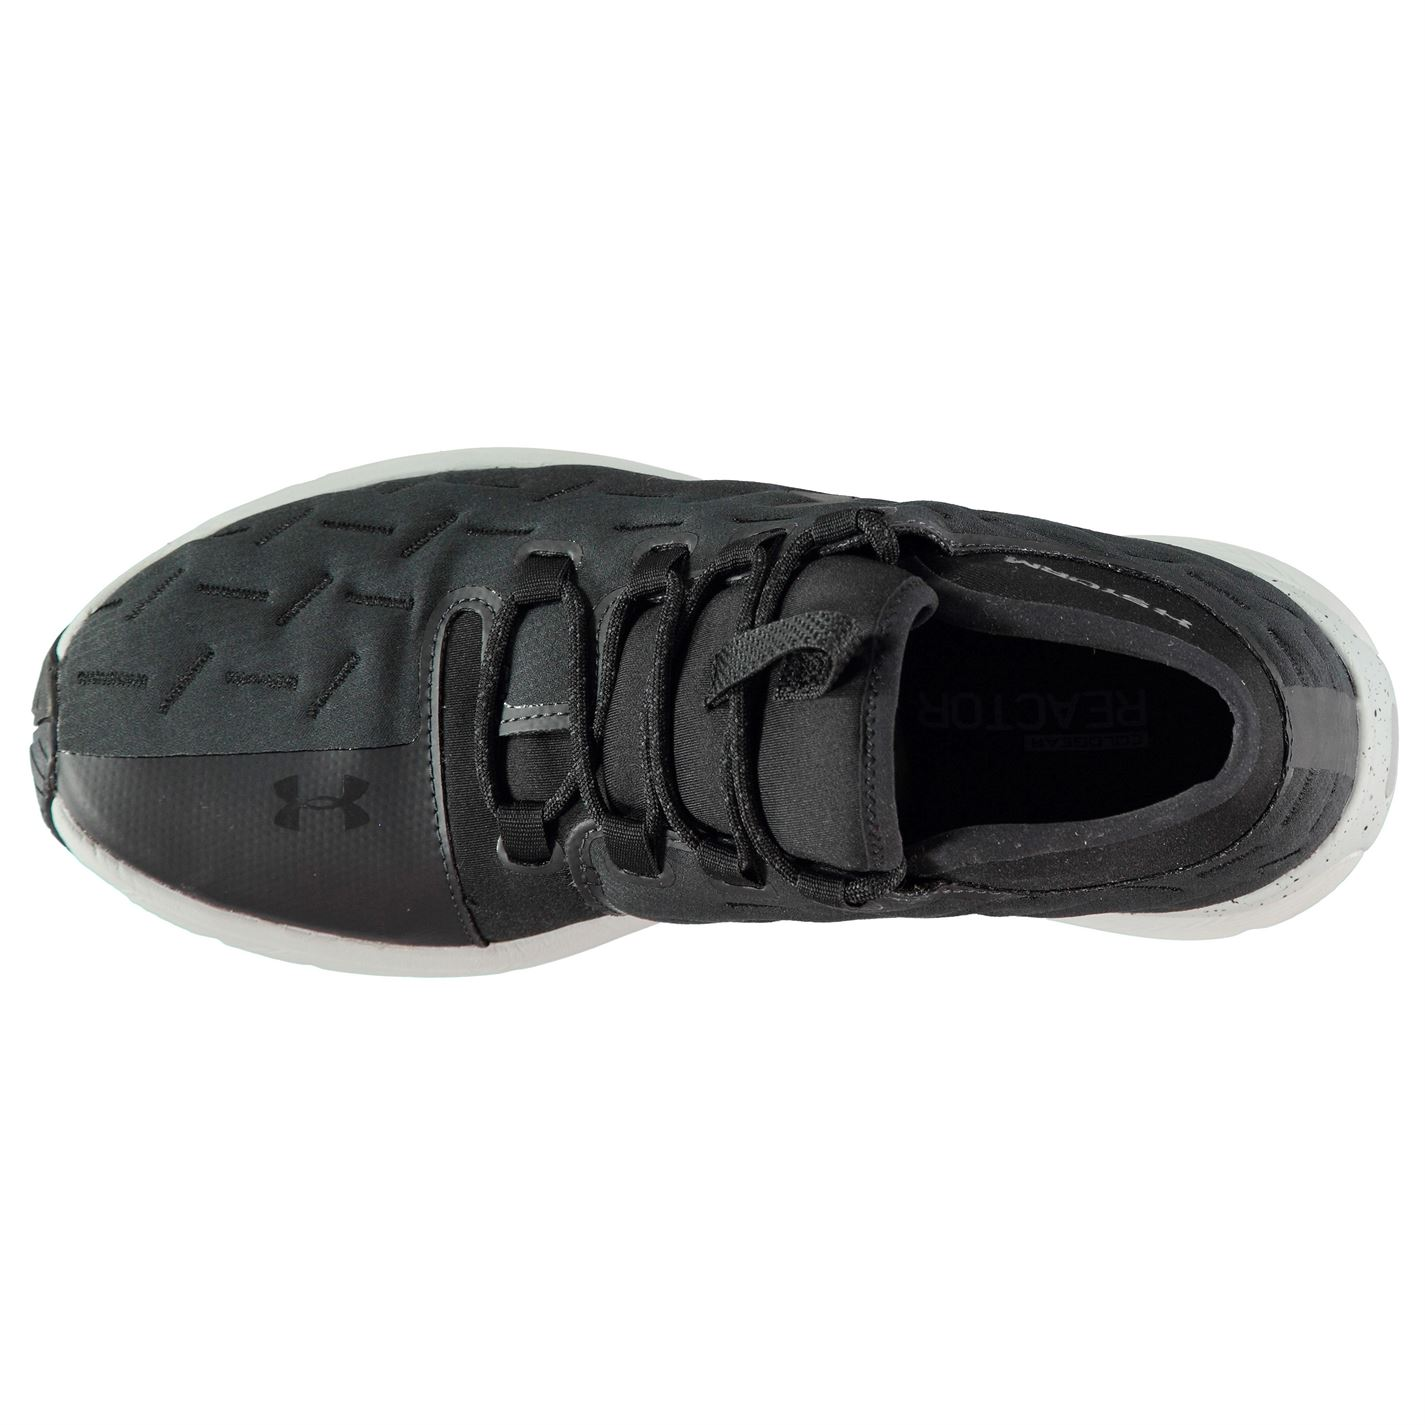 Corredores Gents Run Charged Reactor Cordones correr para Zapatos gris Under negro Armour Hombres wT1qUaz